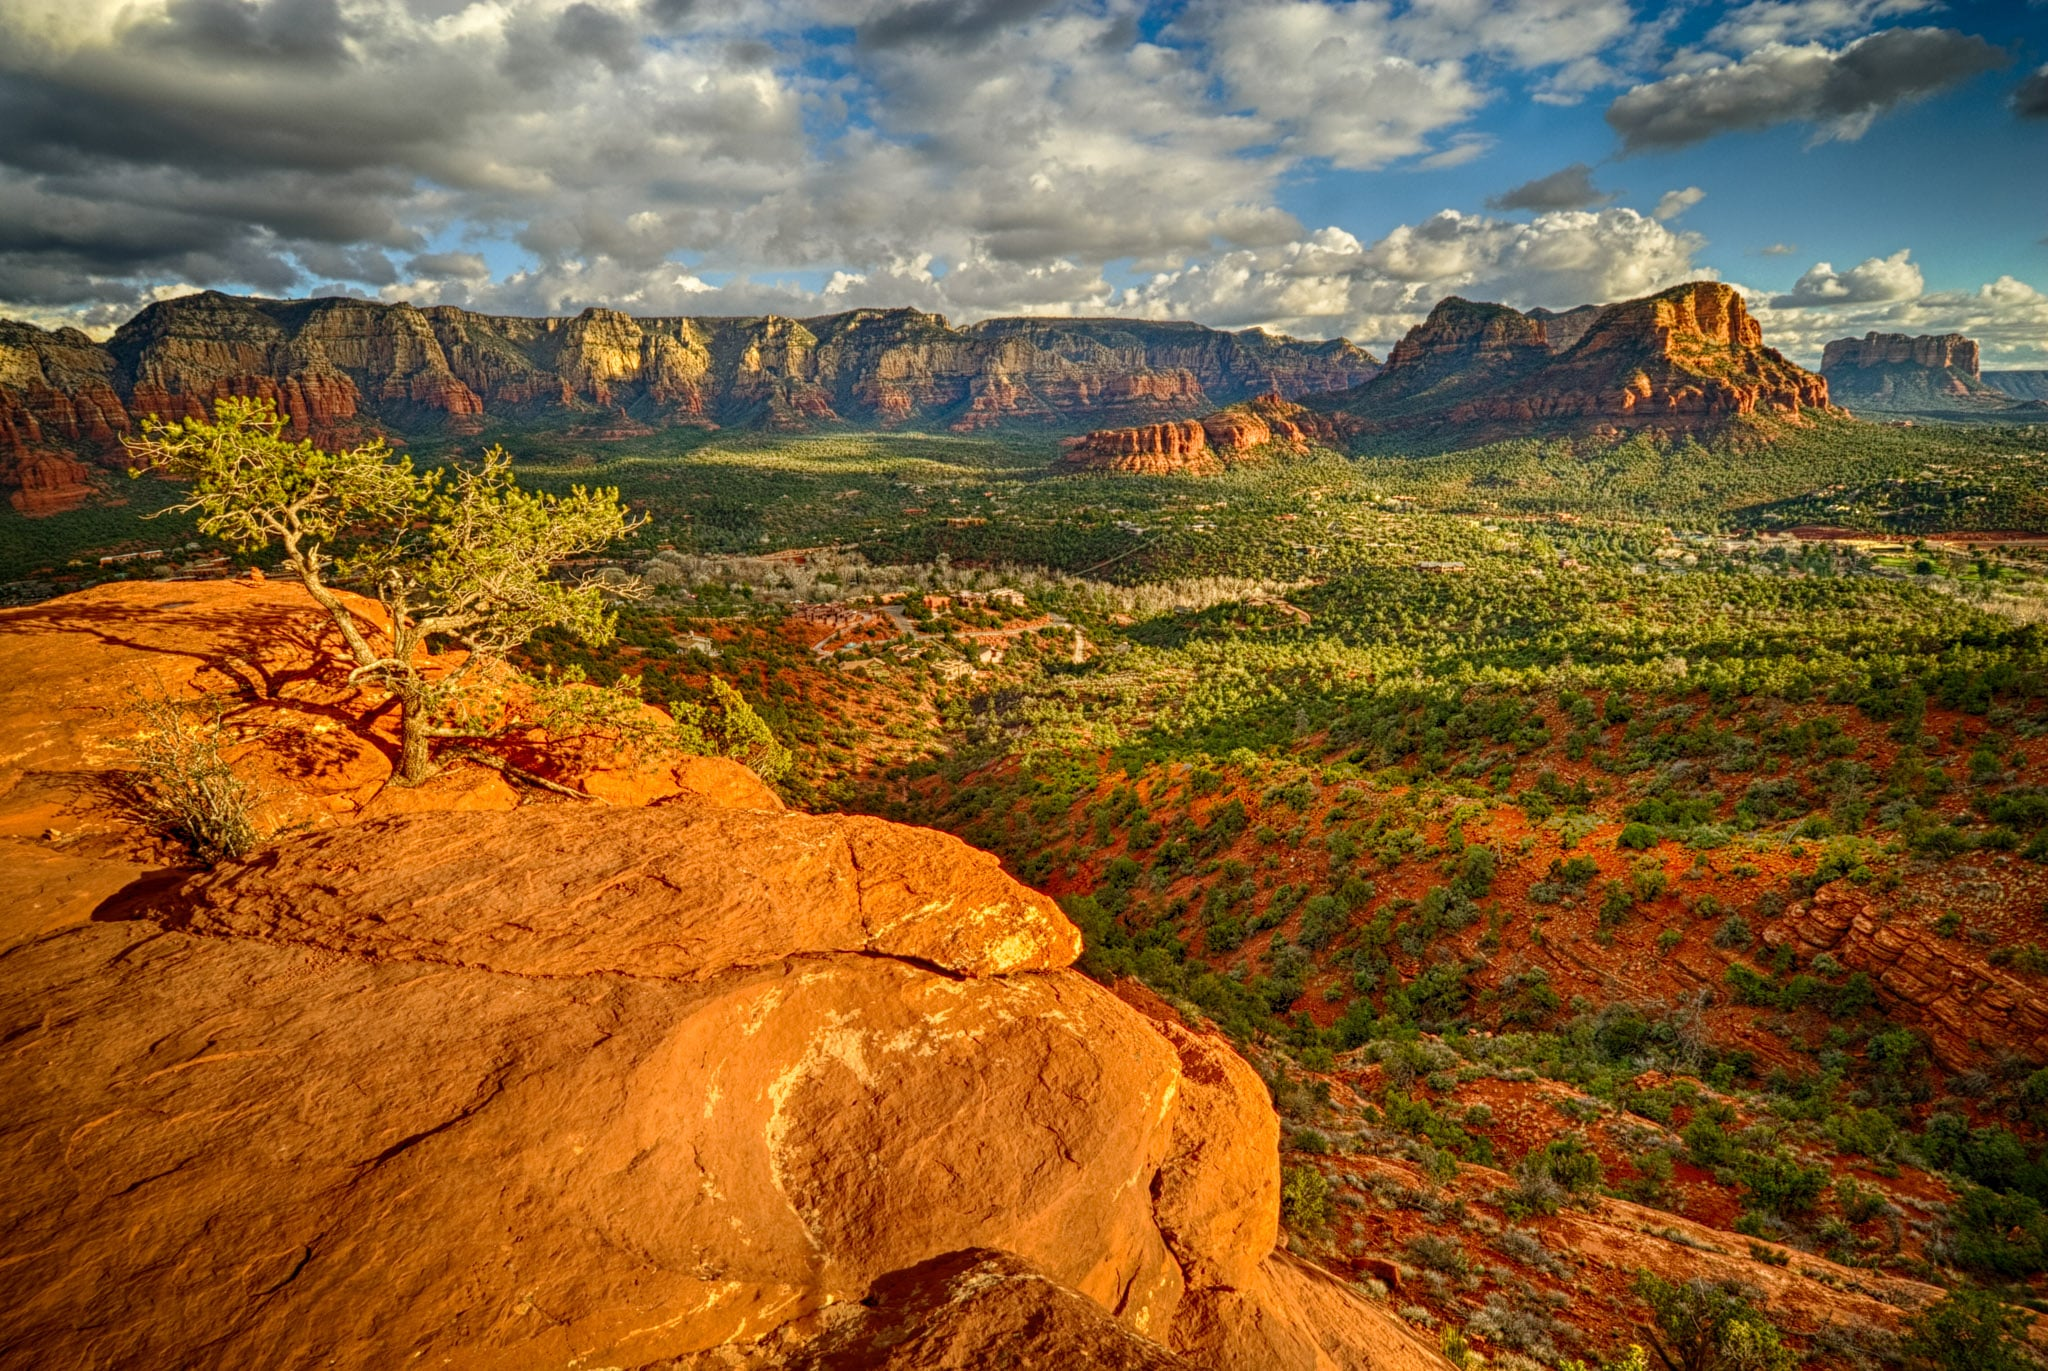 Looking southeast from rock above Airport Road in Sedona, Arizona.Arizona, Sedona, Aorport Road, Twin Buttes, Cathedral Rock, sandstone, sunset, clouds